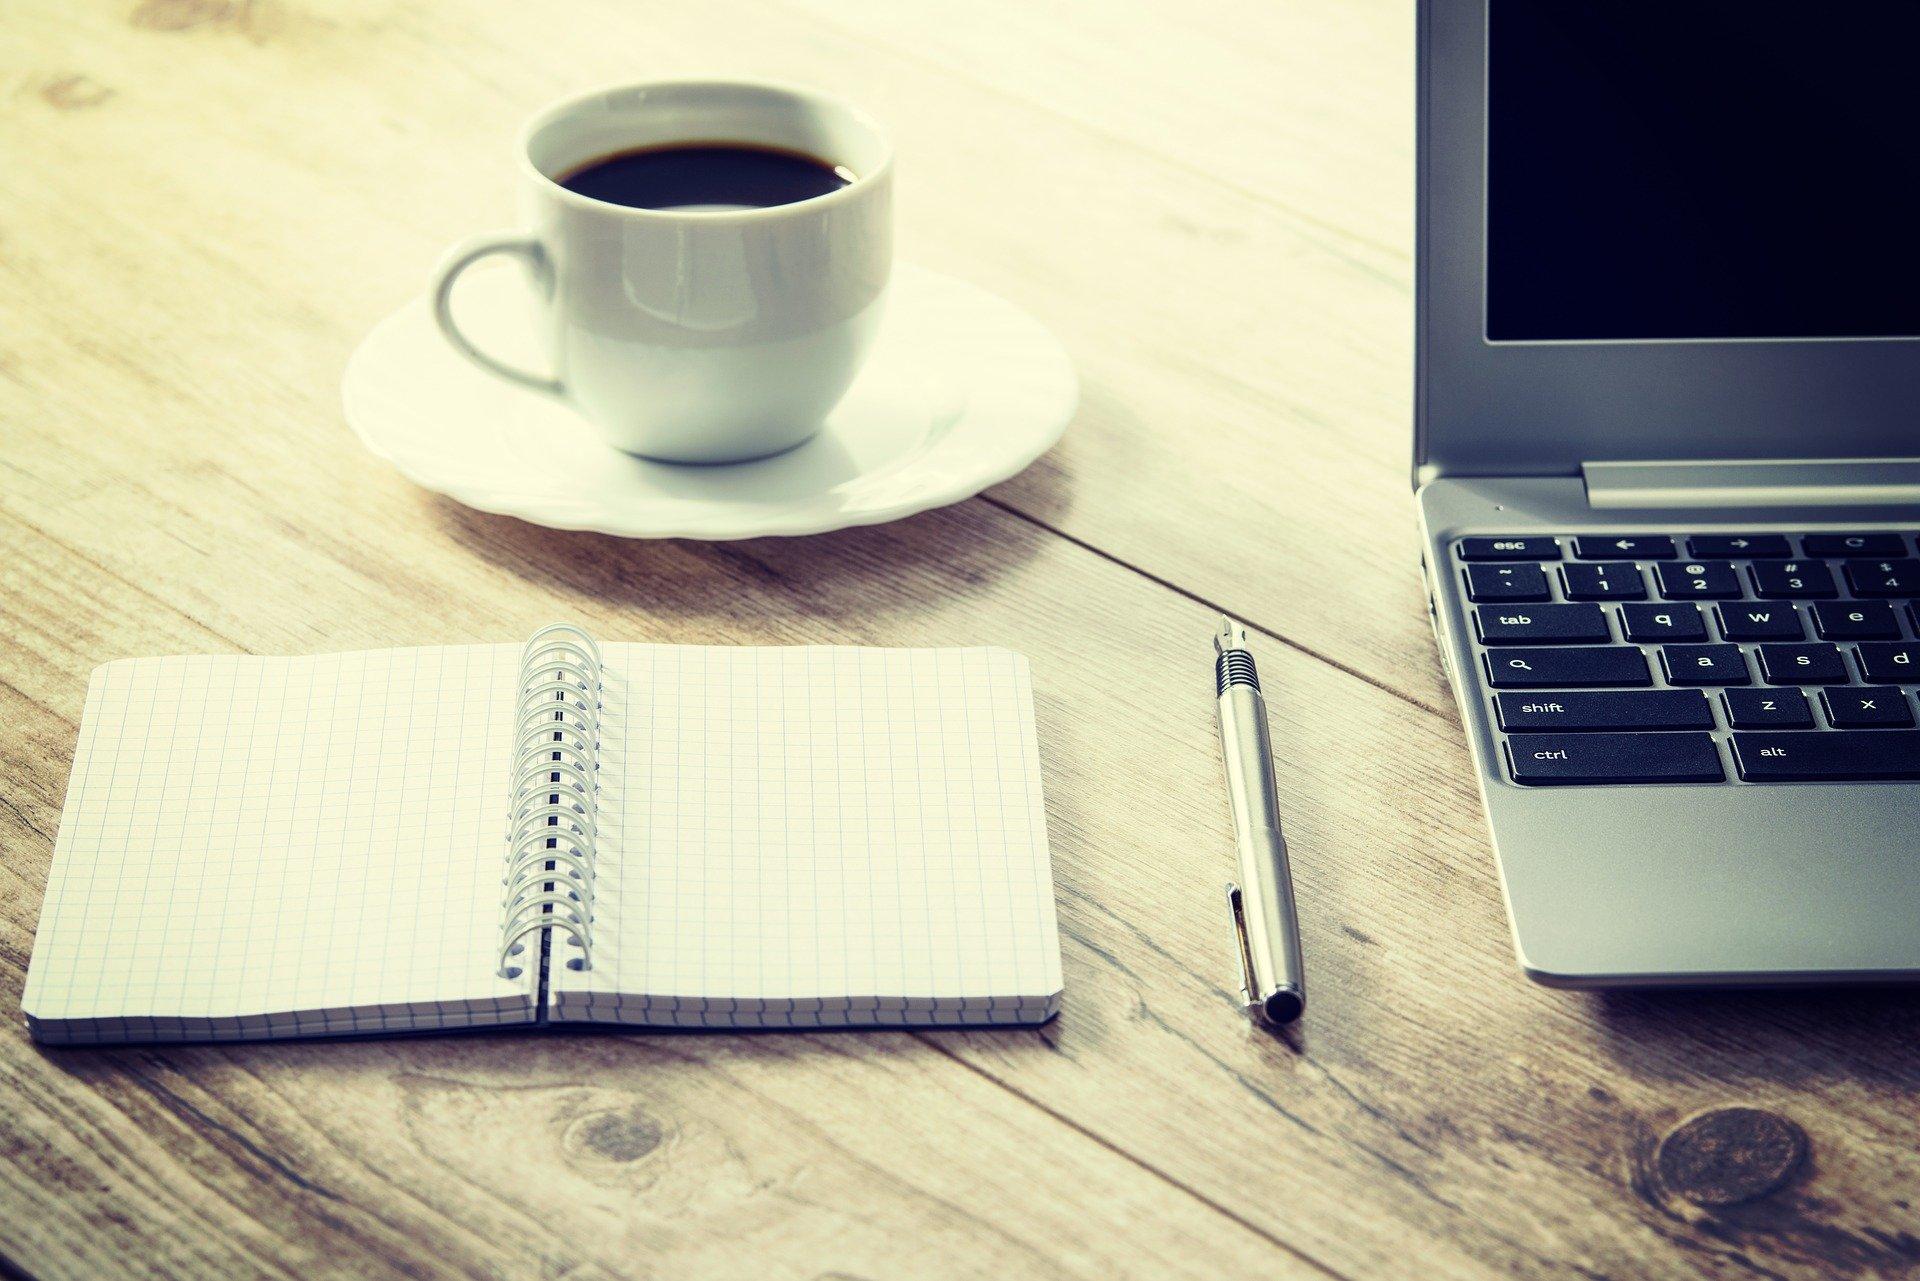 How to Enhance Your Business' Online Presence